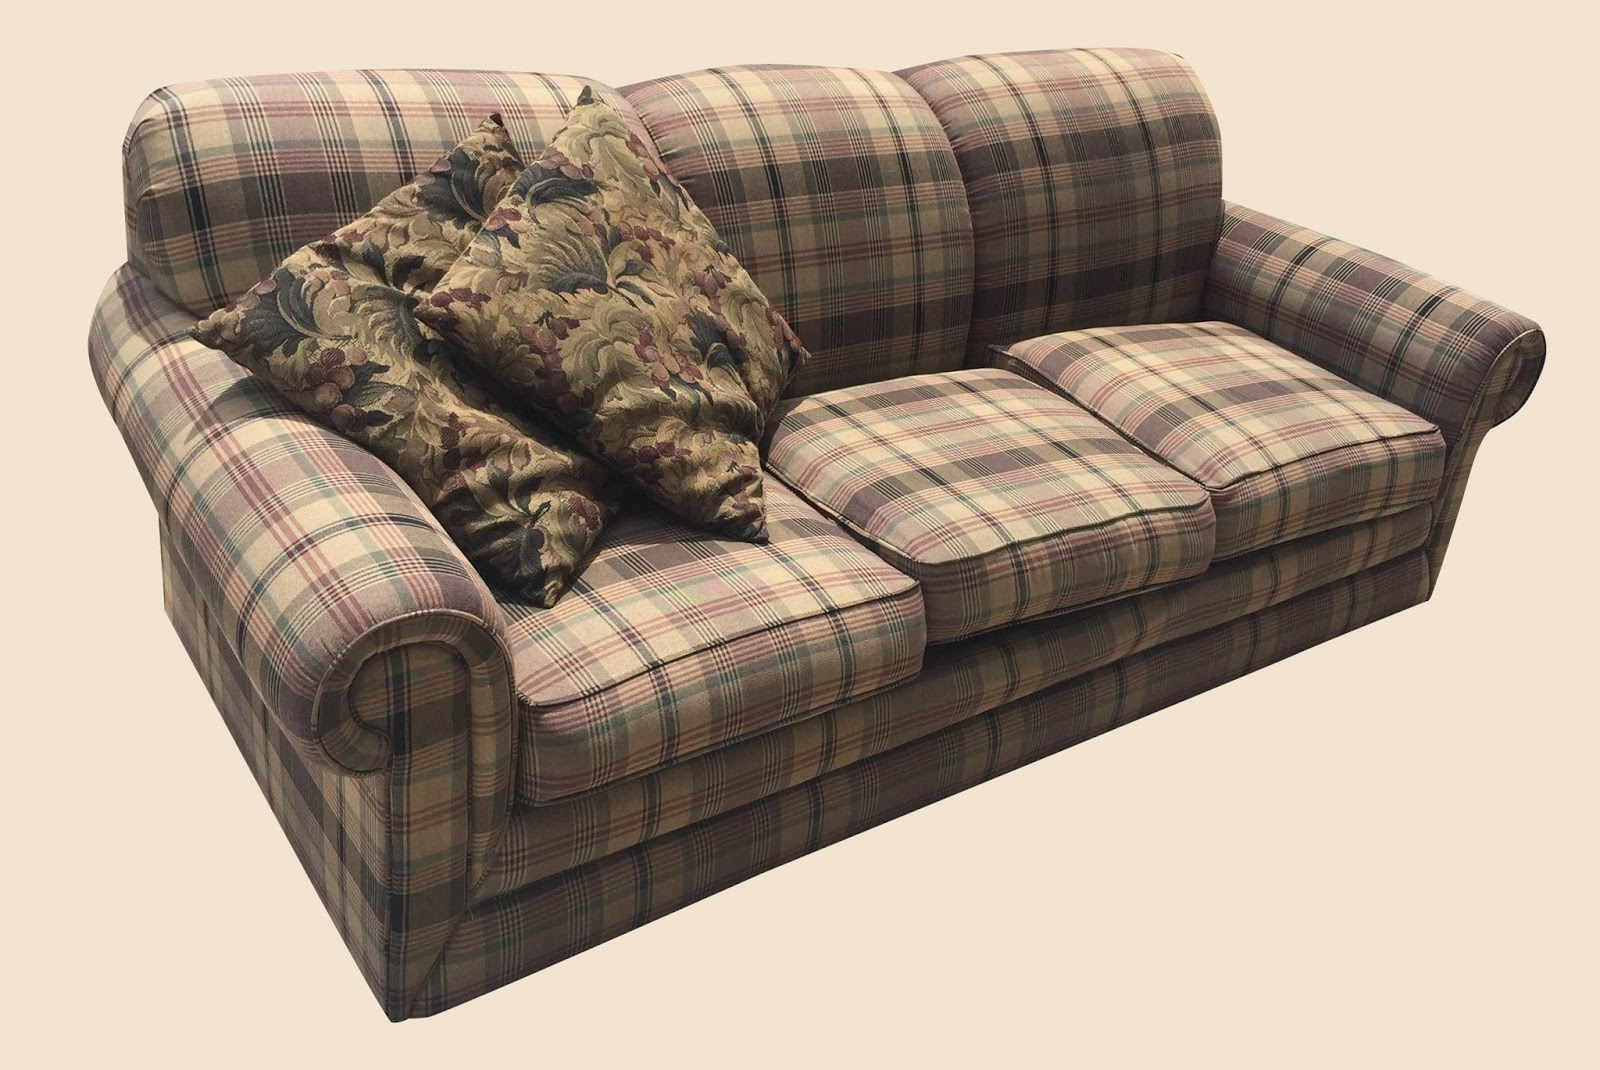 Uhuru Furniture Collectibles Brown Plaid Sofa 125 Sold